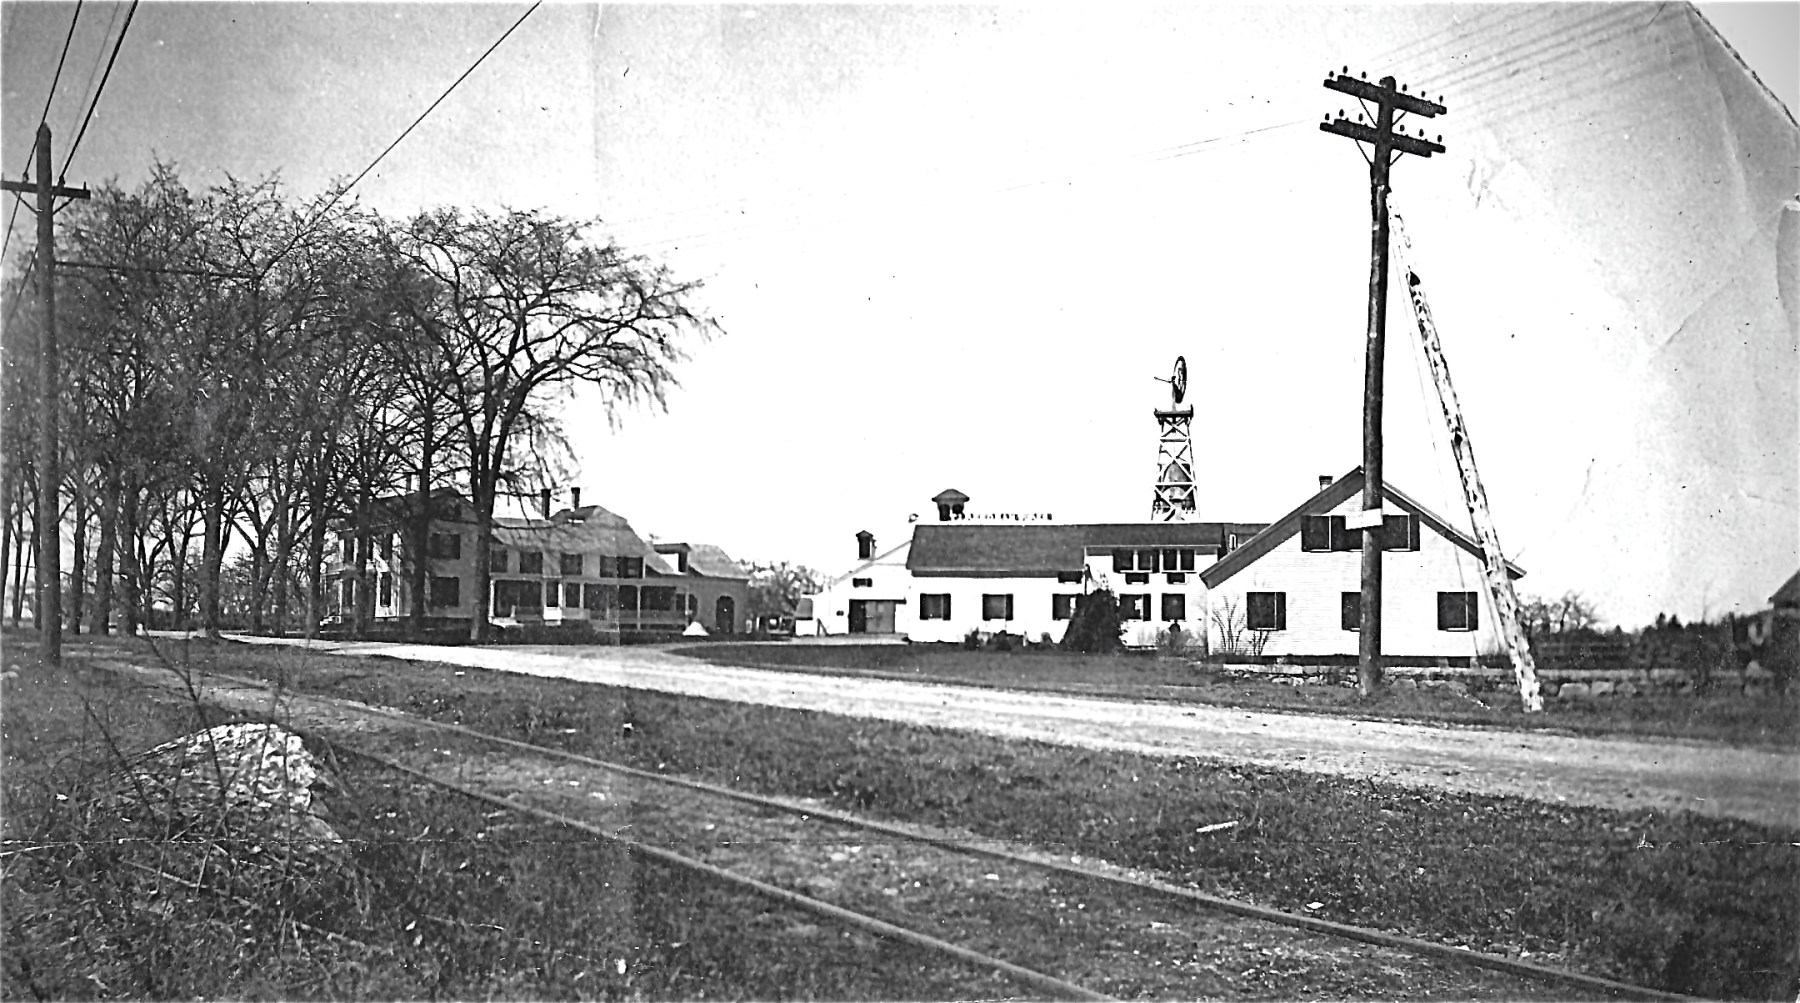 Reed Ham Works with trolley tracks, Burlington MA. Photo credit: Burlington Archives